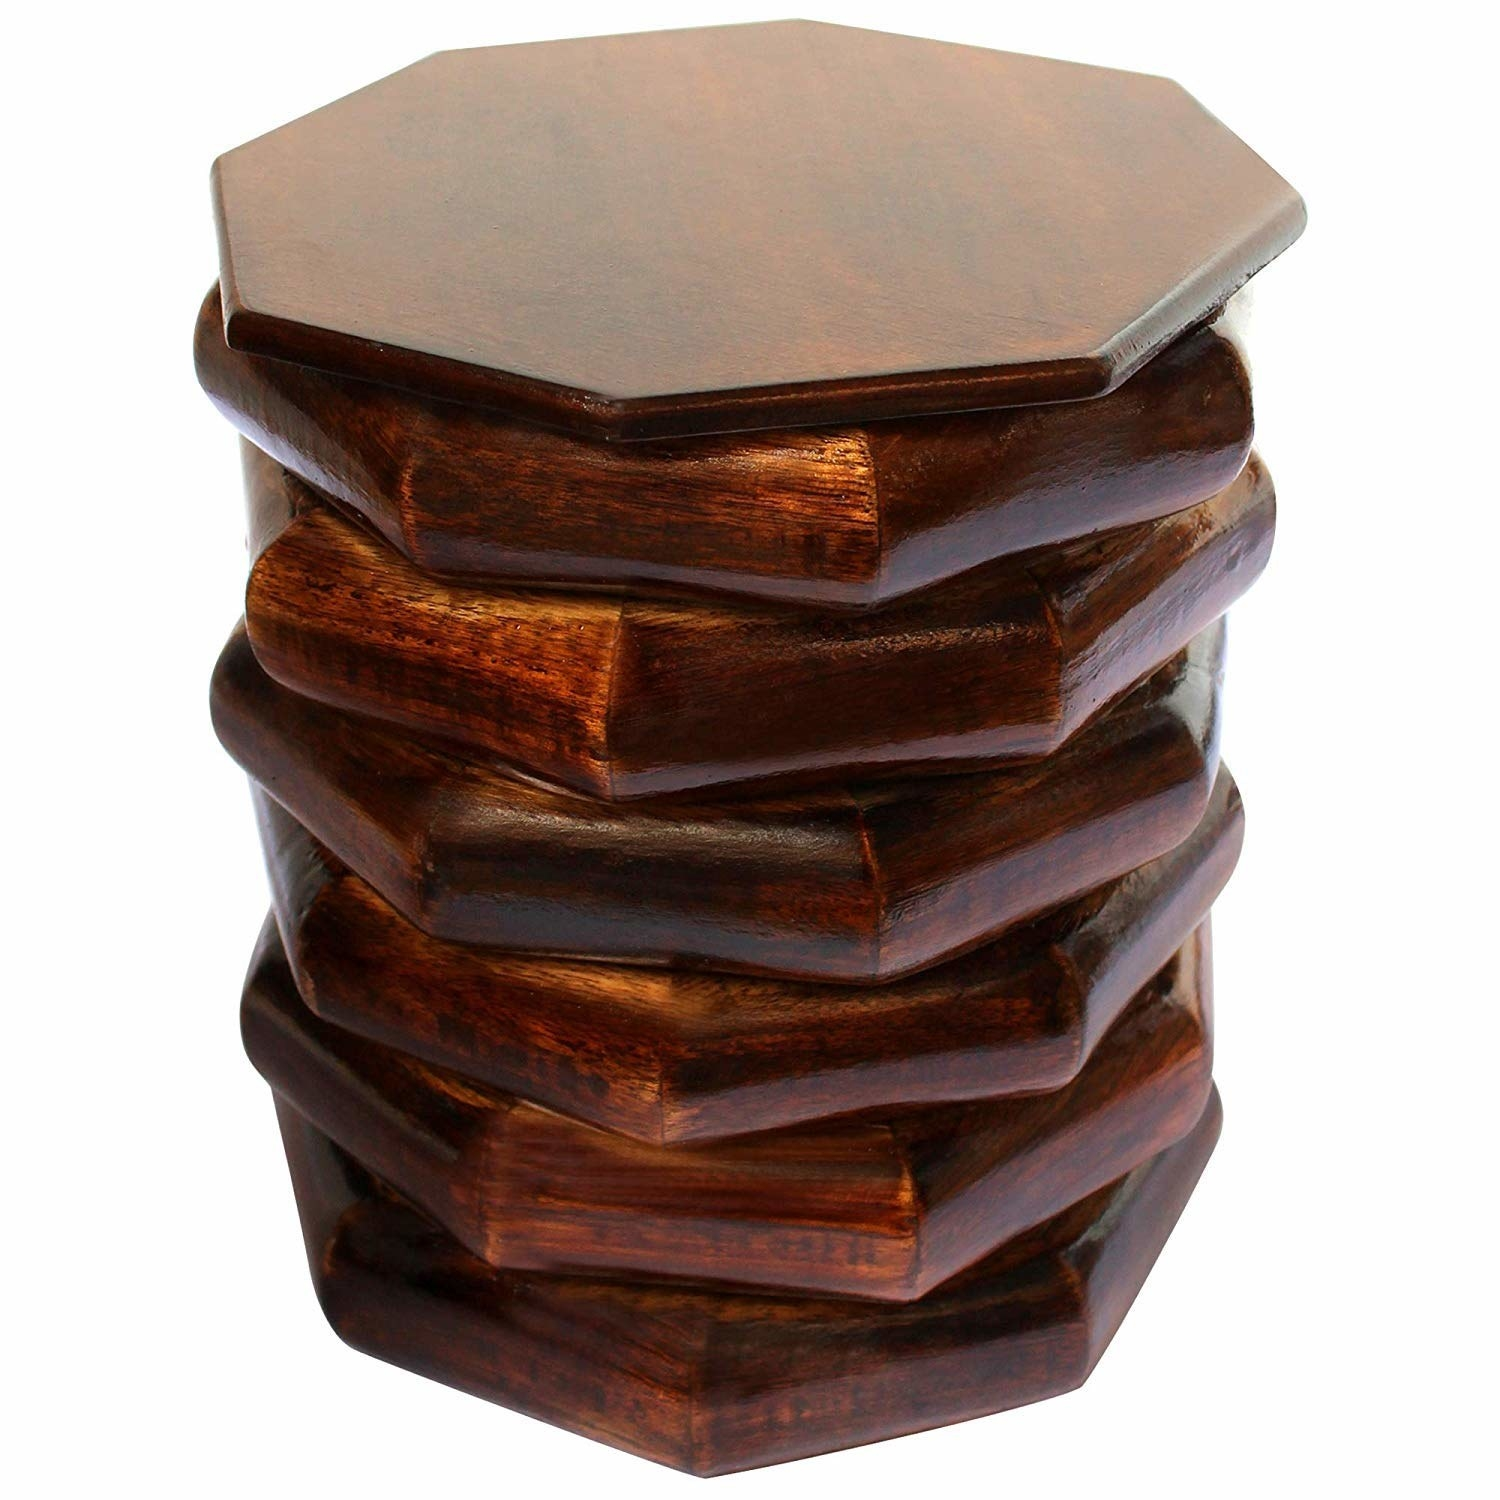 The wood stool is designed to look like unaligned, hexagonal slabs of wood stacked on top of each other.